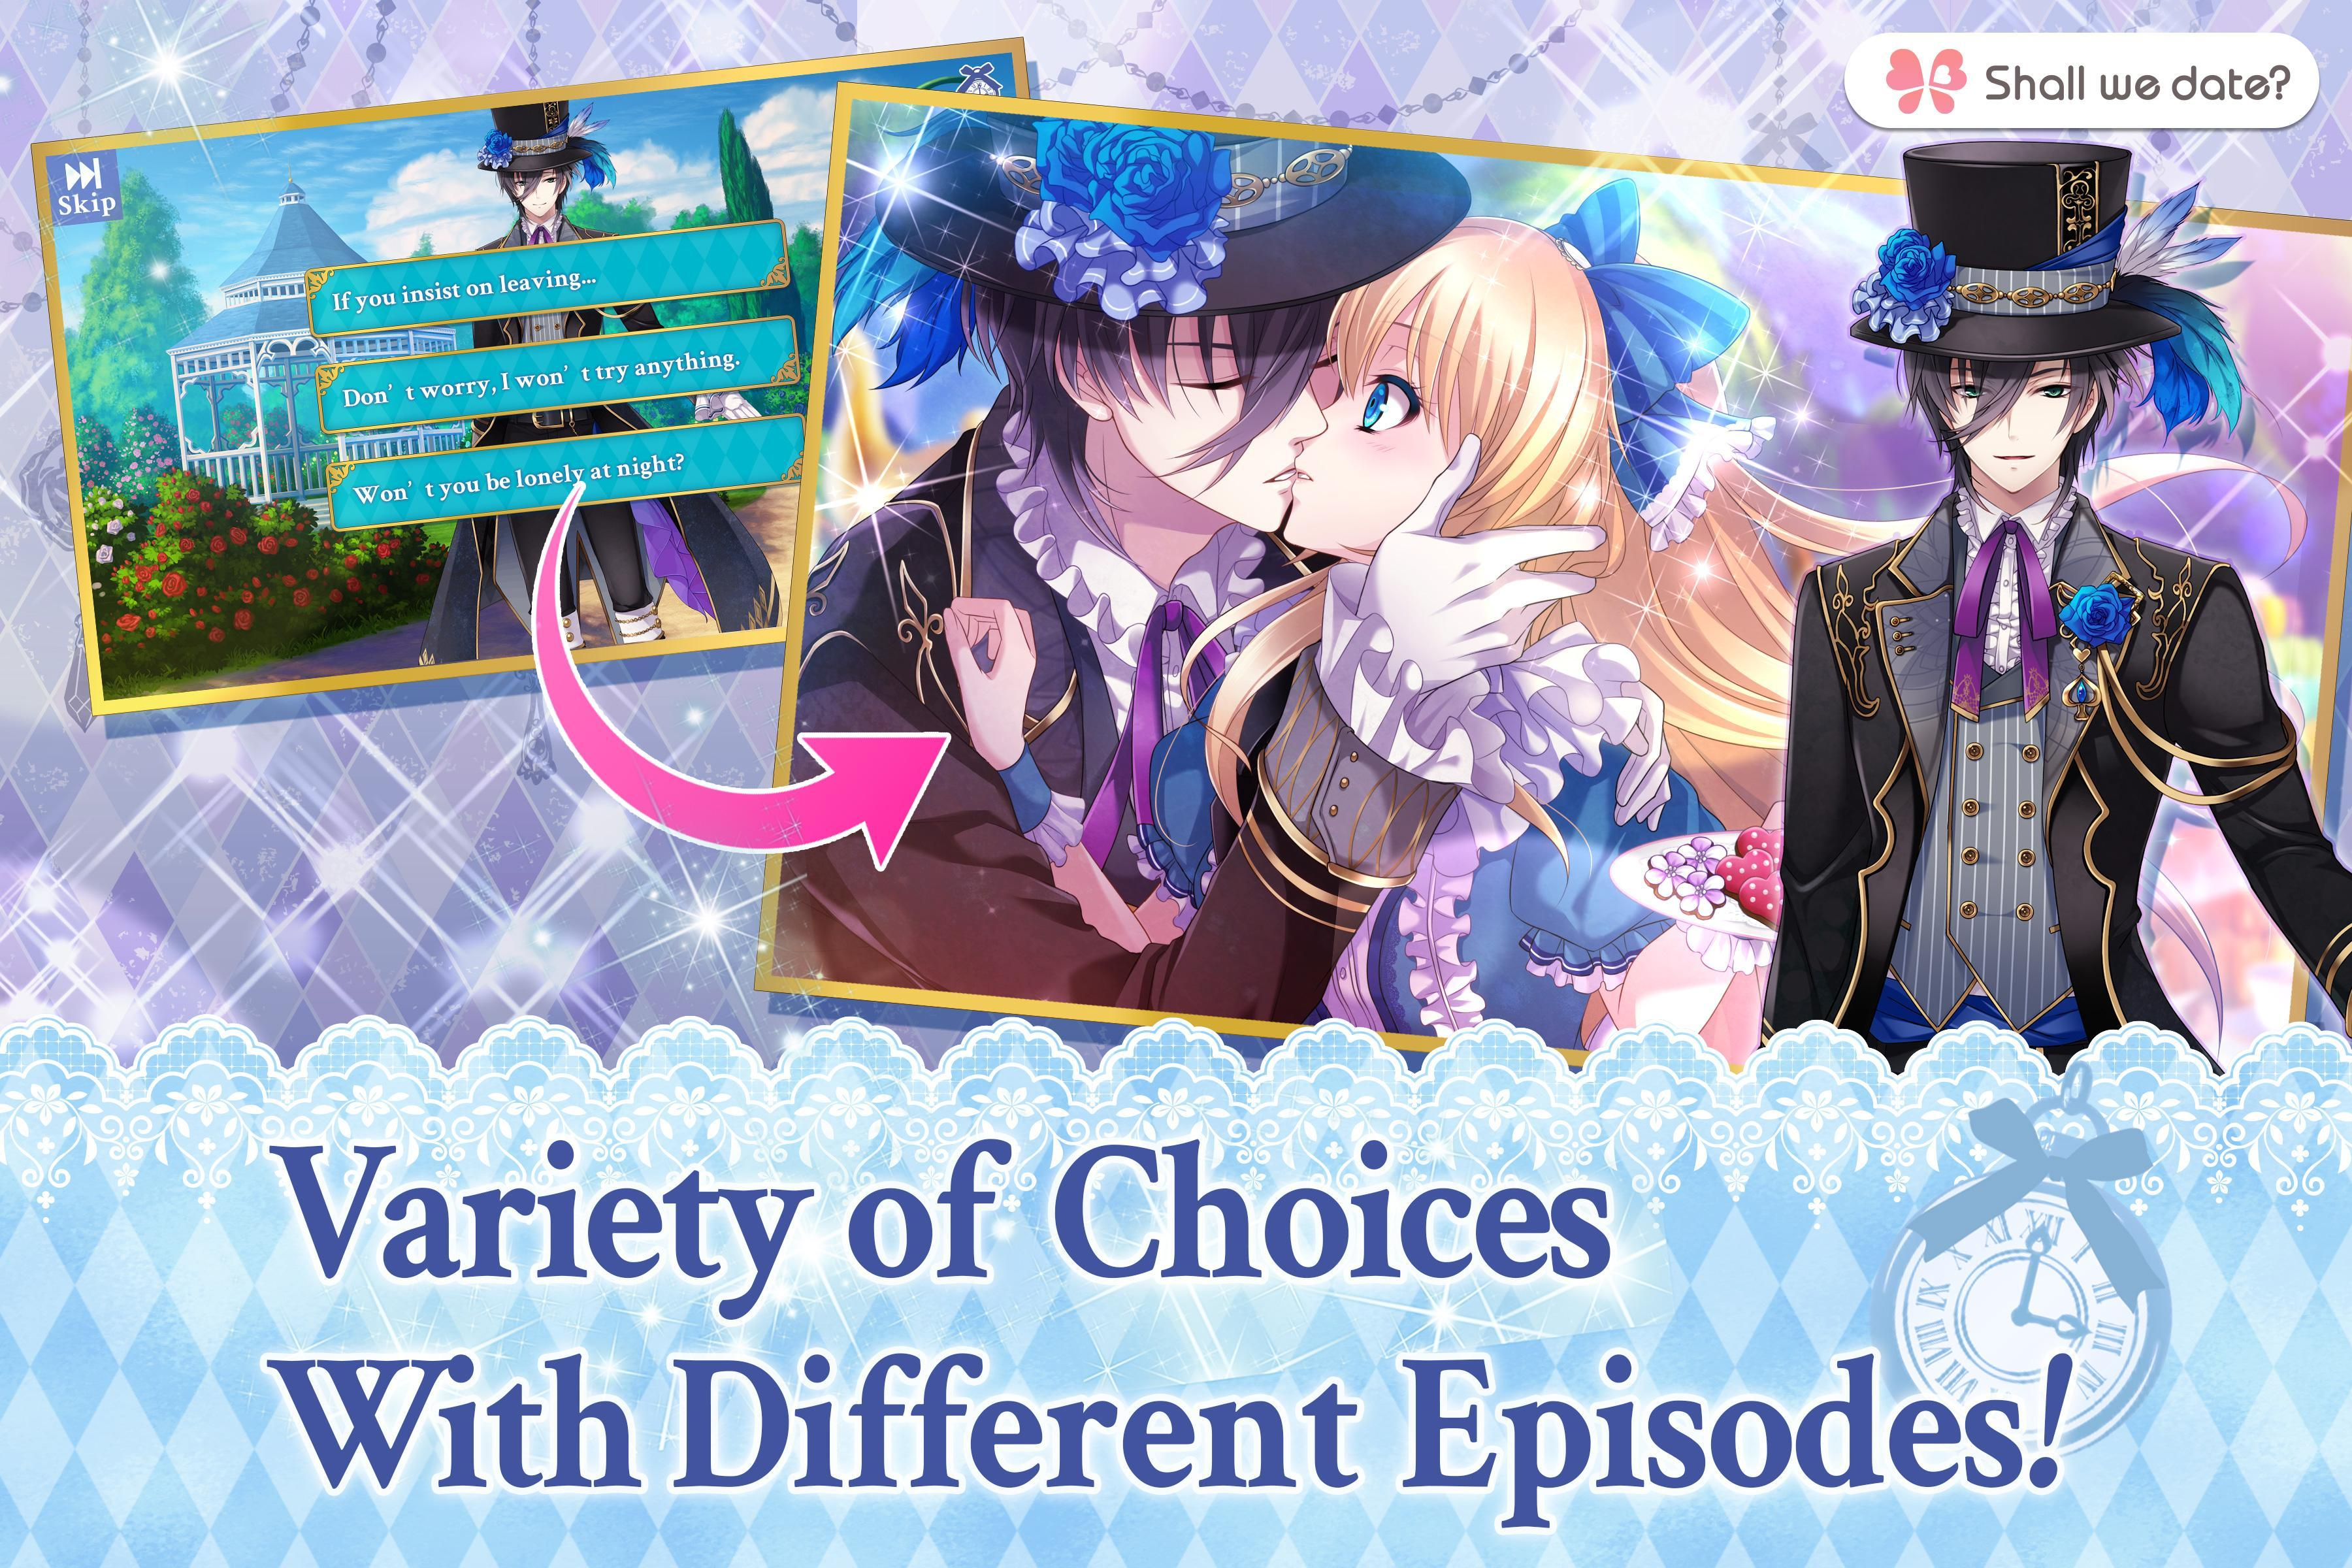 Lost Alice - otome game/dating sim #shall we date 1.5.1 Screenshot 11